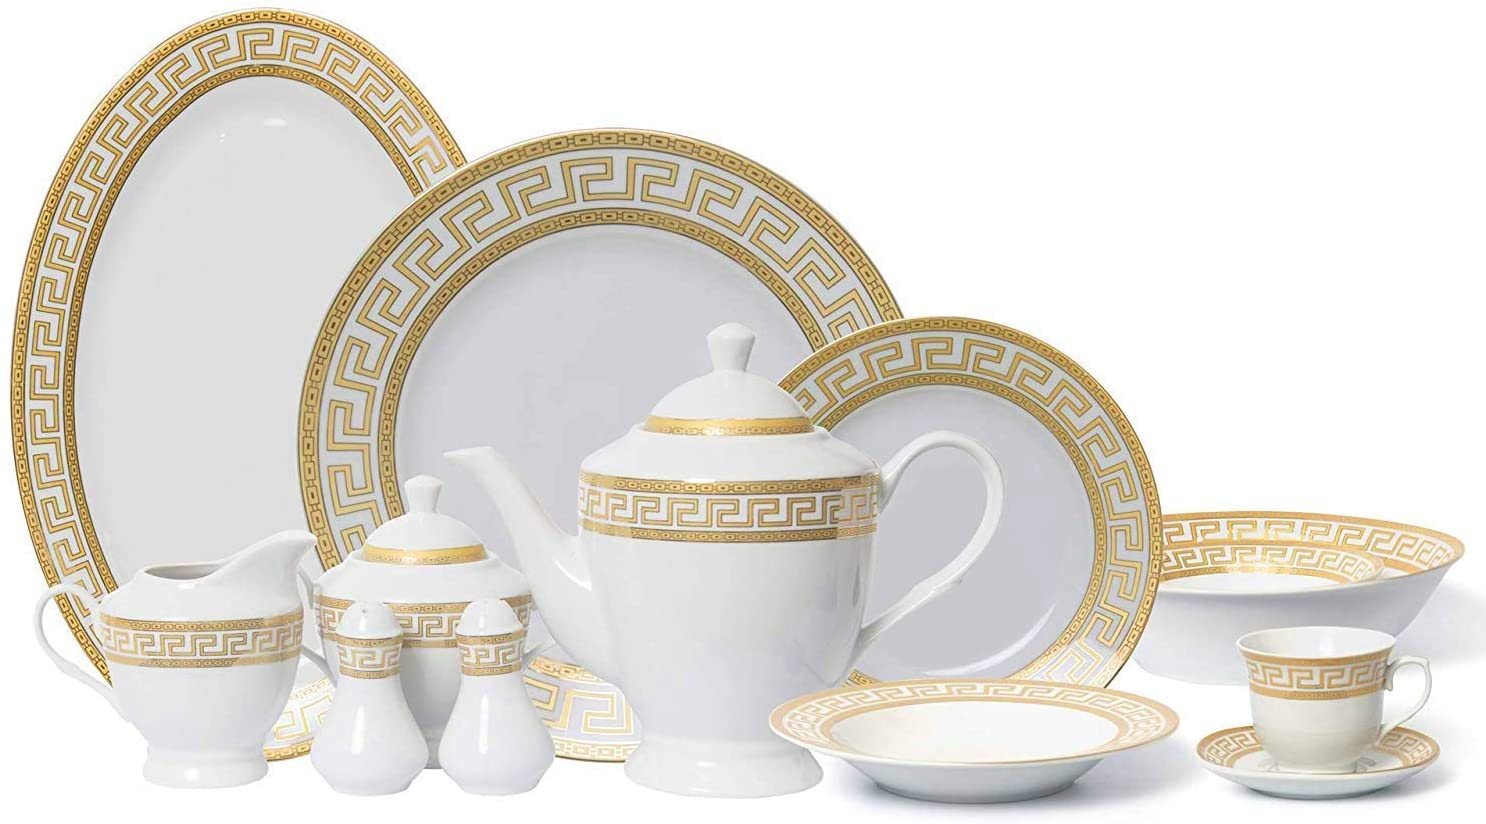 Euro Porcelain 7-pc Banquet Dinnerware Set, Luxury Tableware Dining  Service for 7